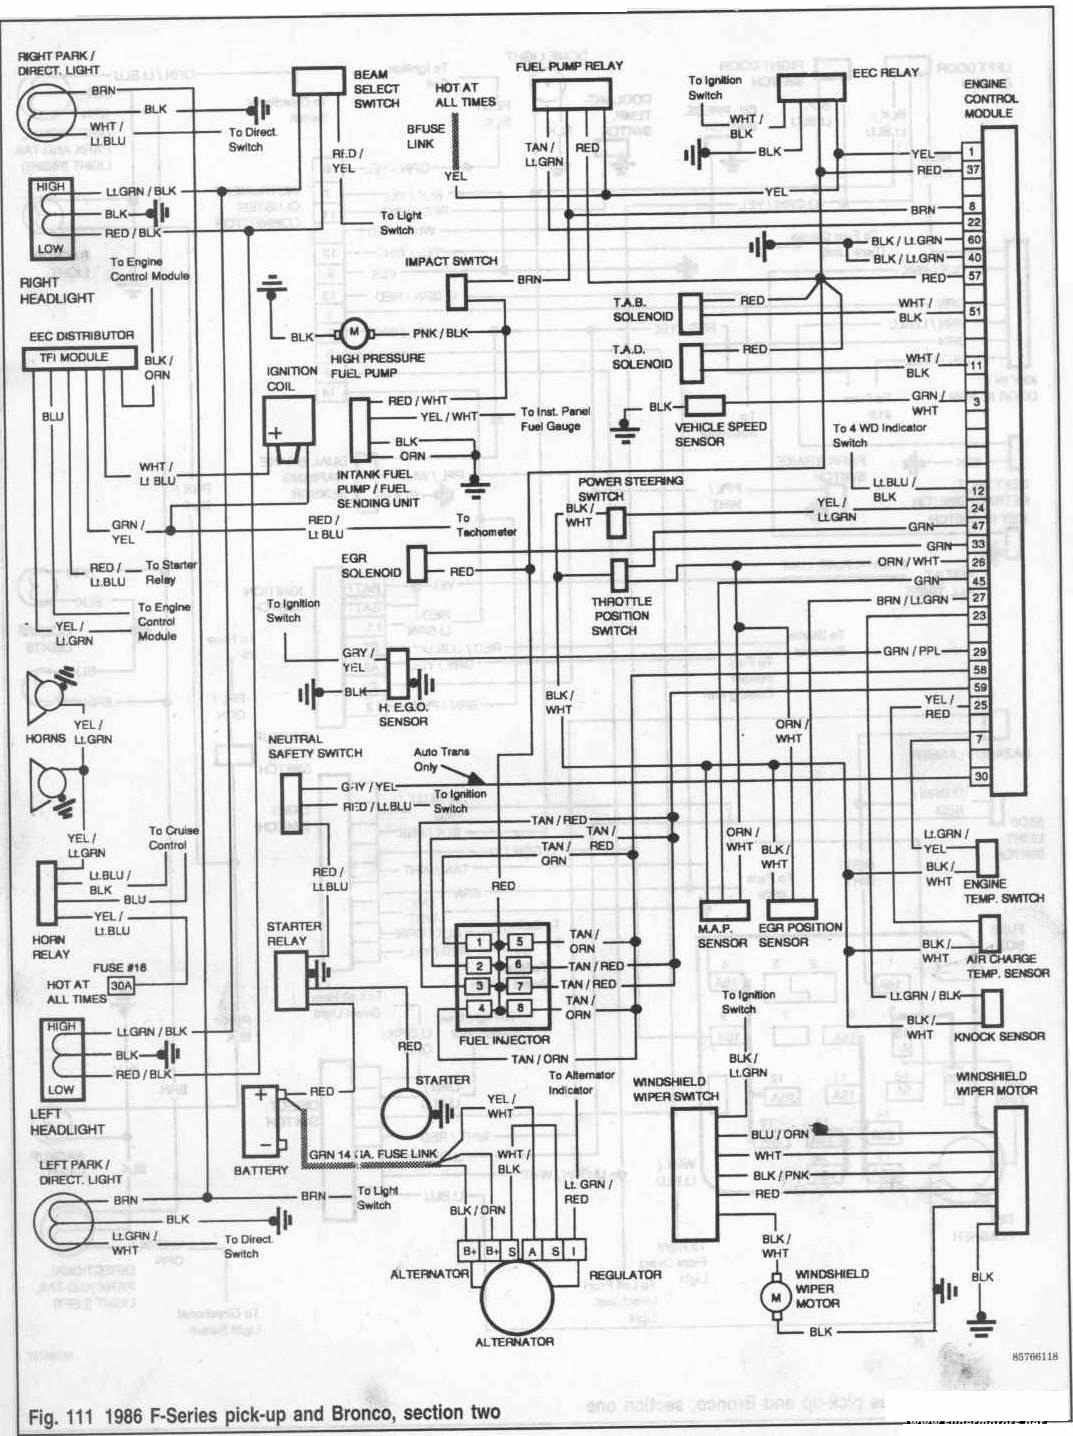 hight resolution of 1985 ford bronco fuse box diagram explained wiring diagrams ford bronco engine mounts 1990 ford bronco